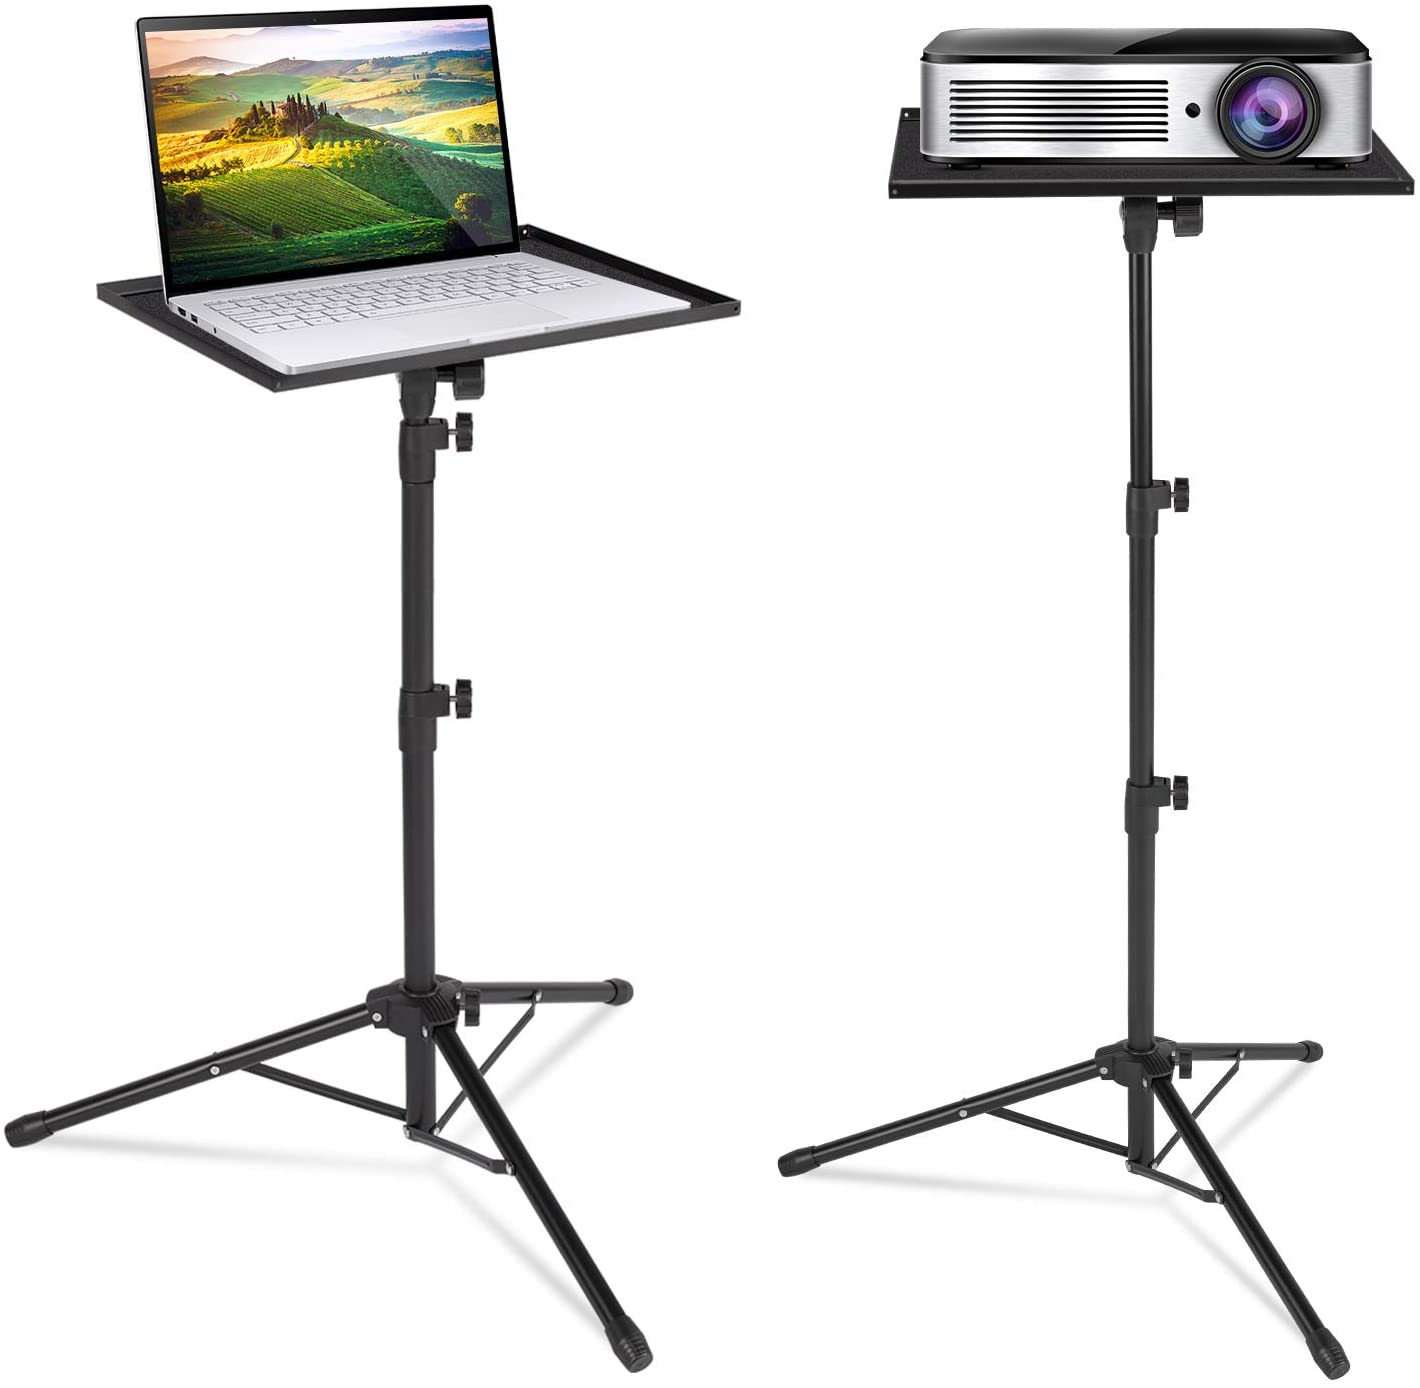 Klvied Projector Tripod Stand